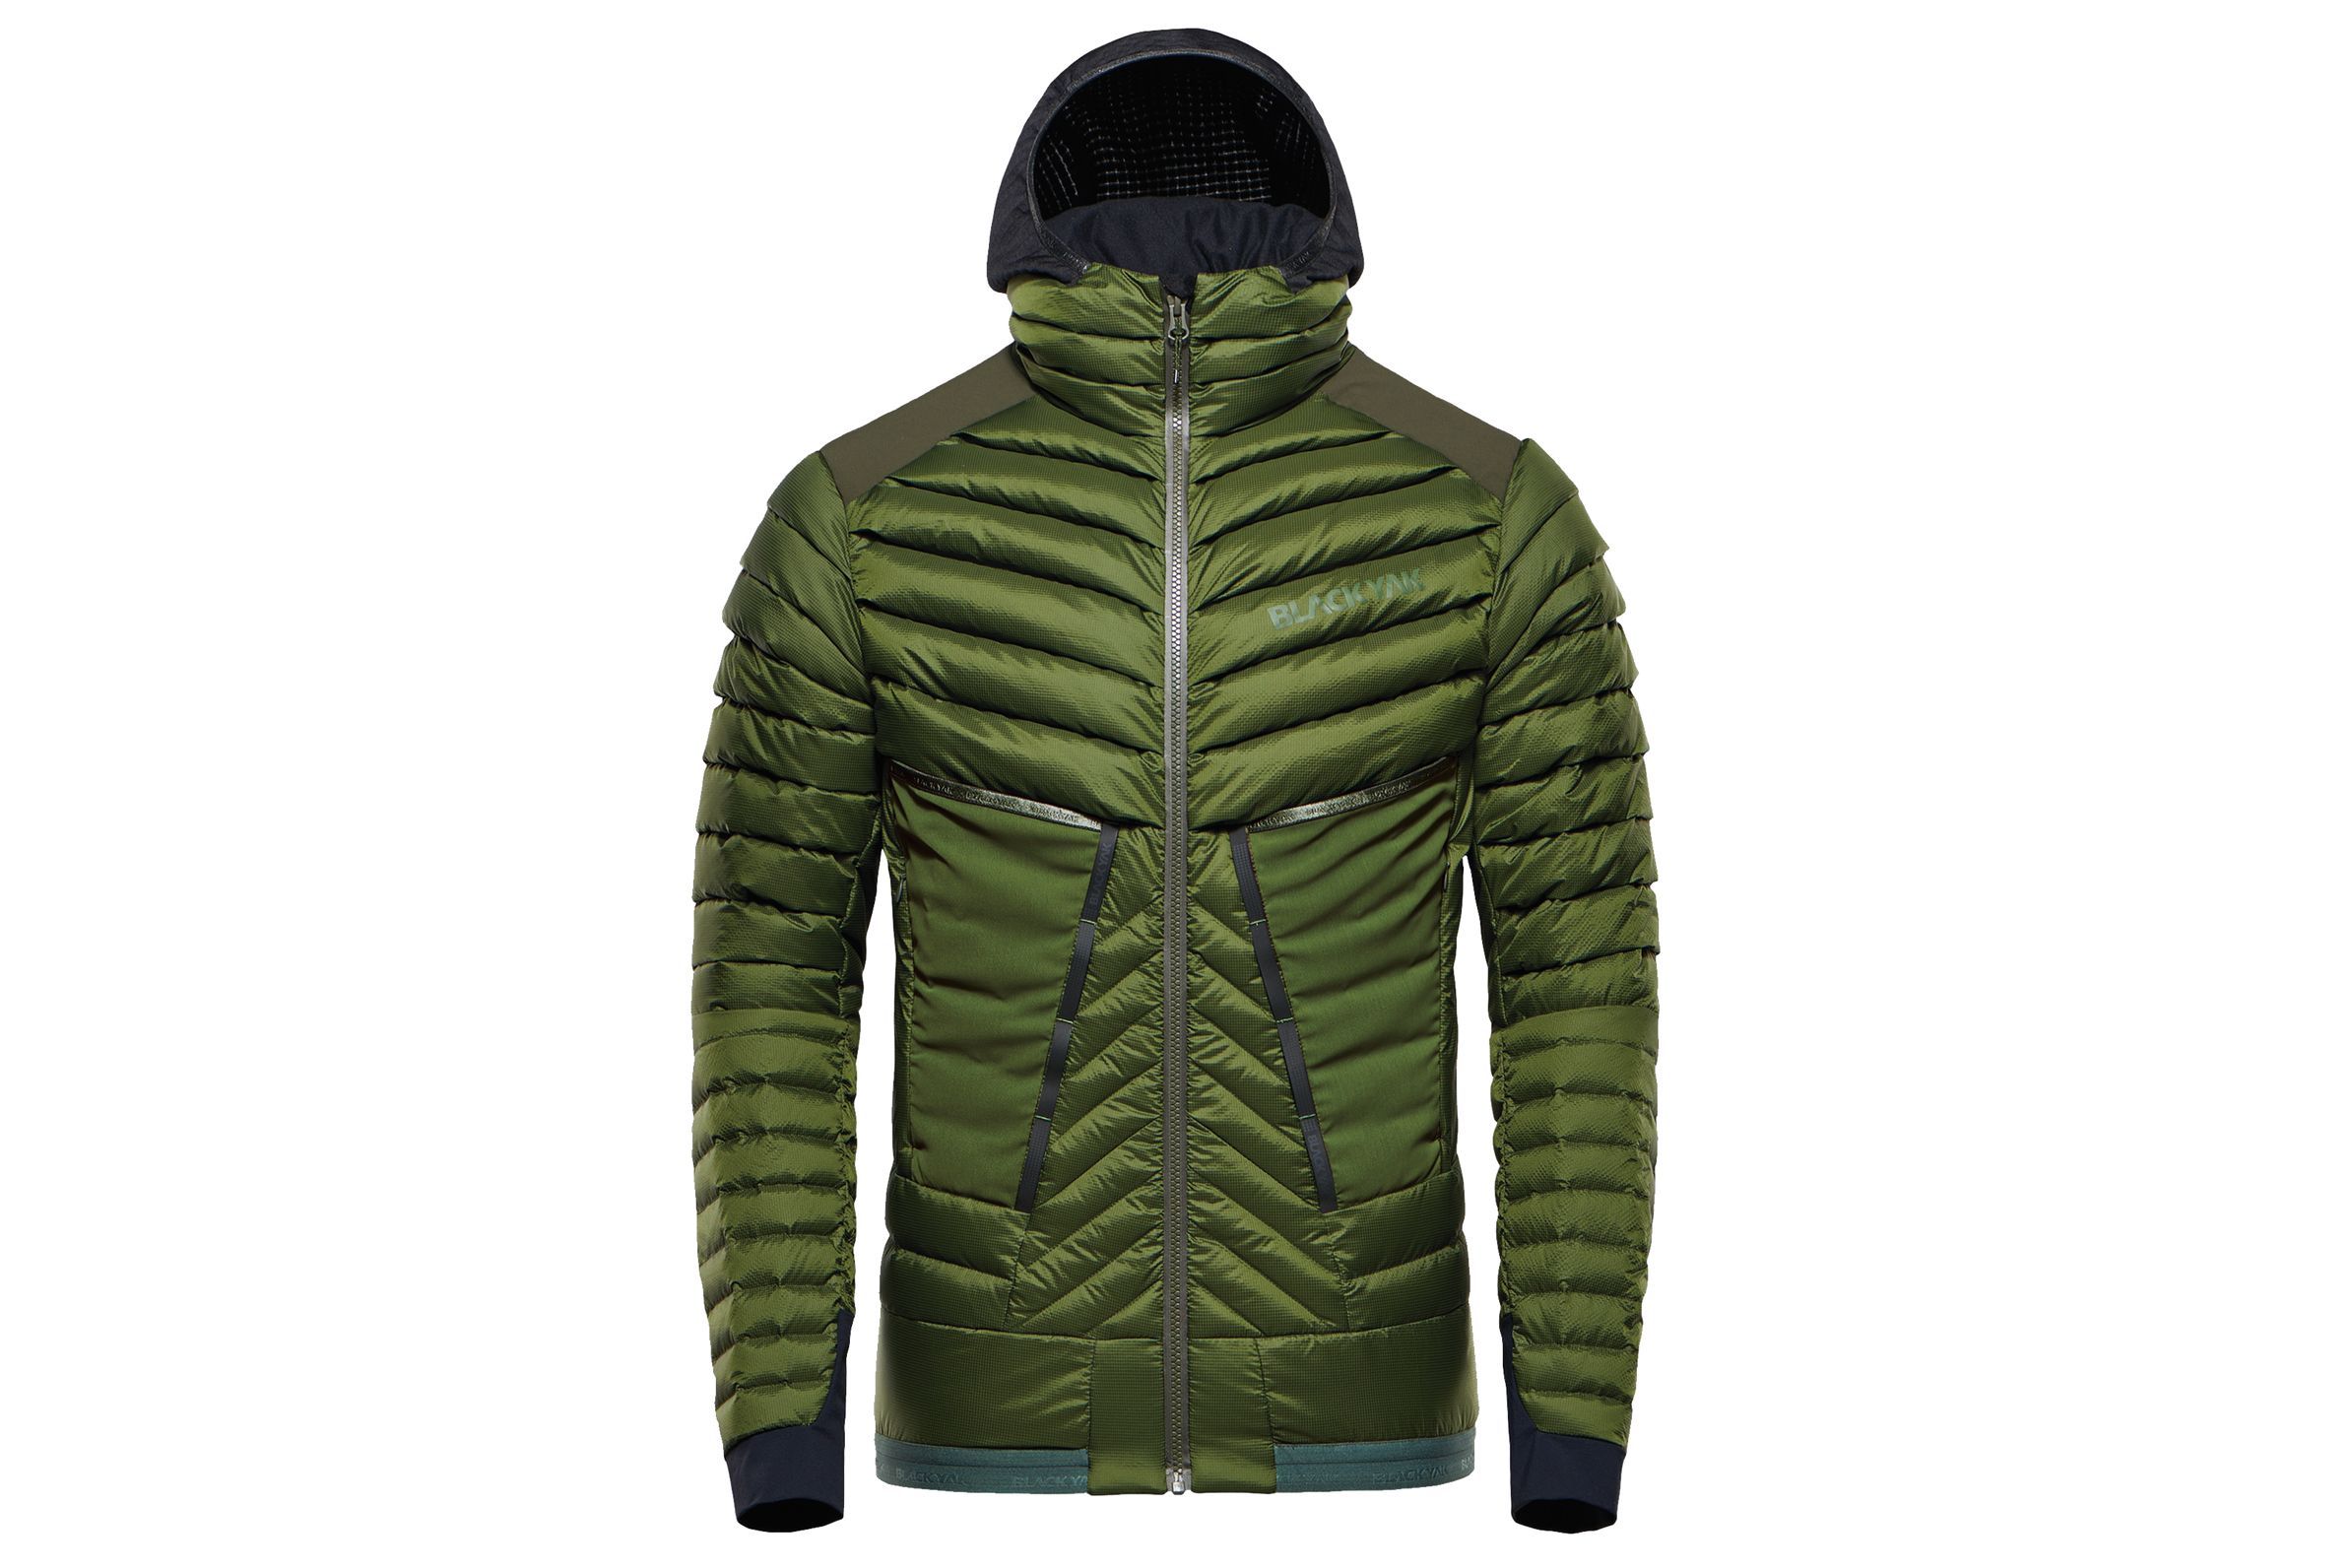 Blackyak Bakosi down jacket